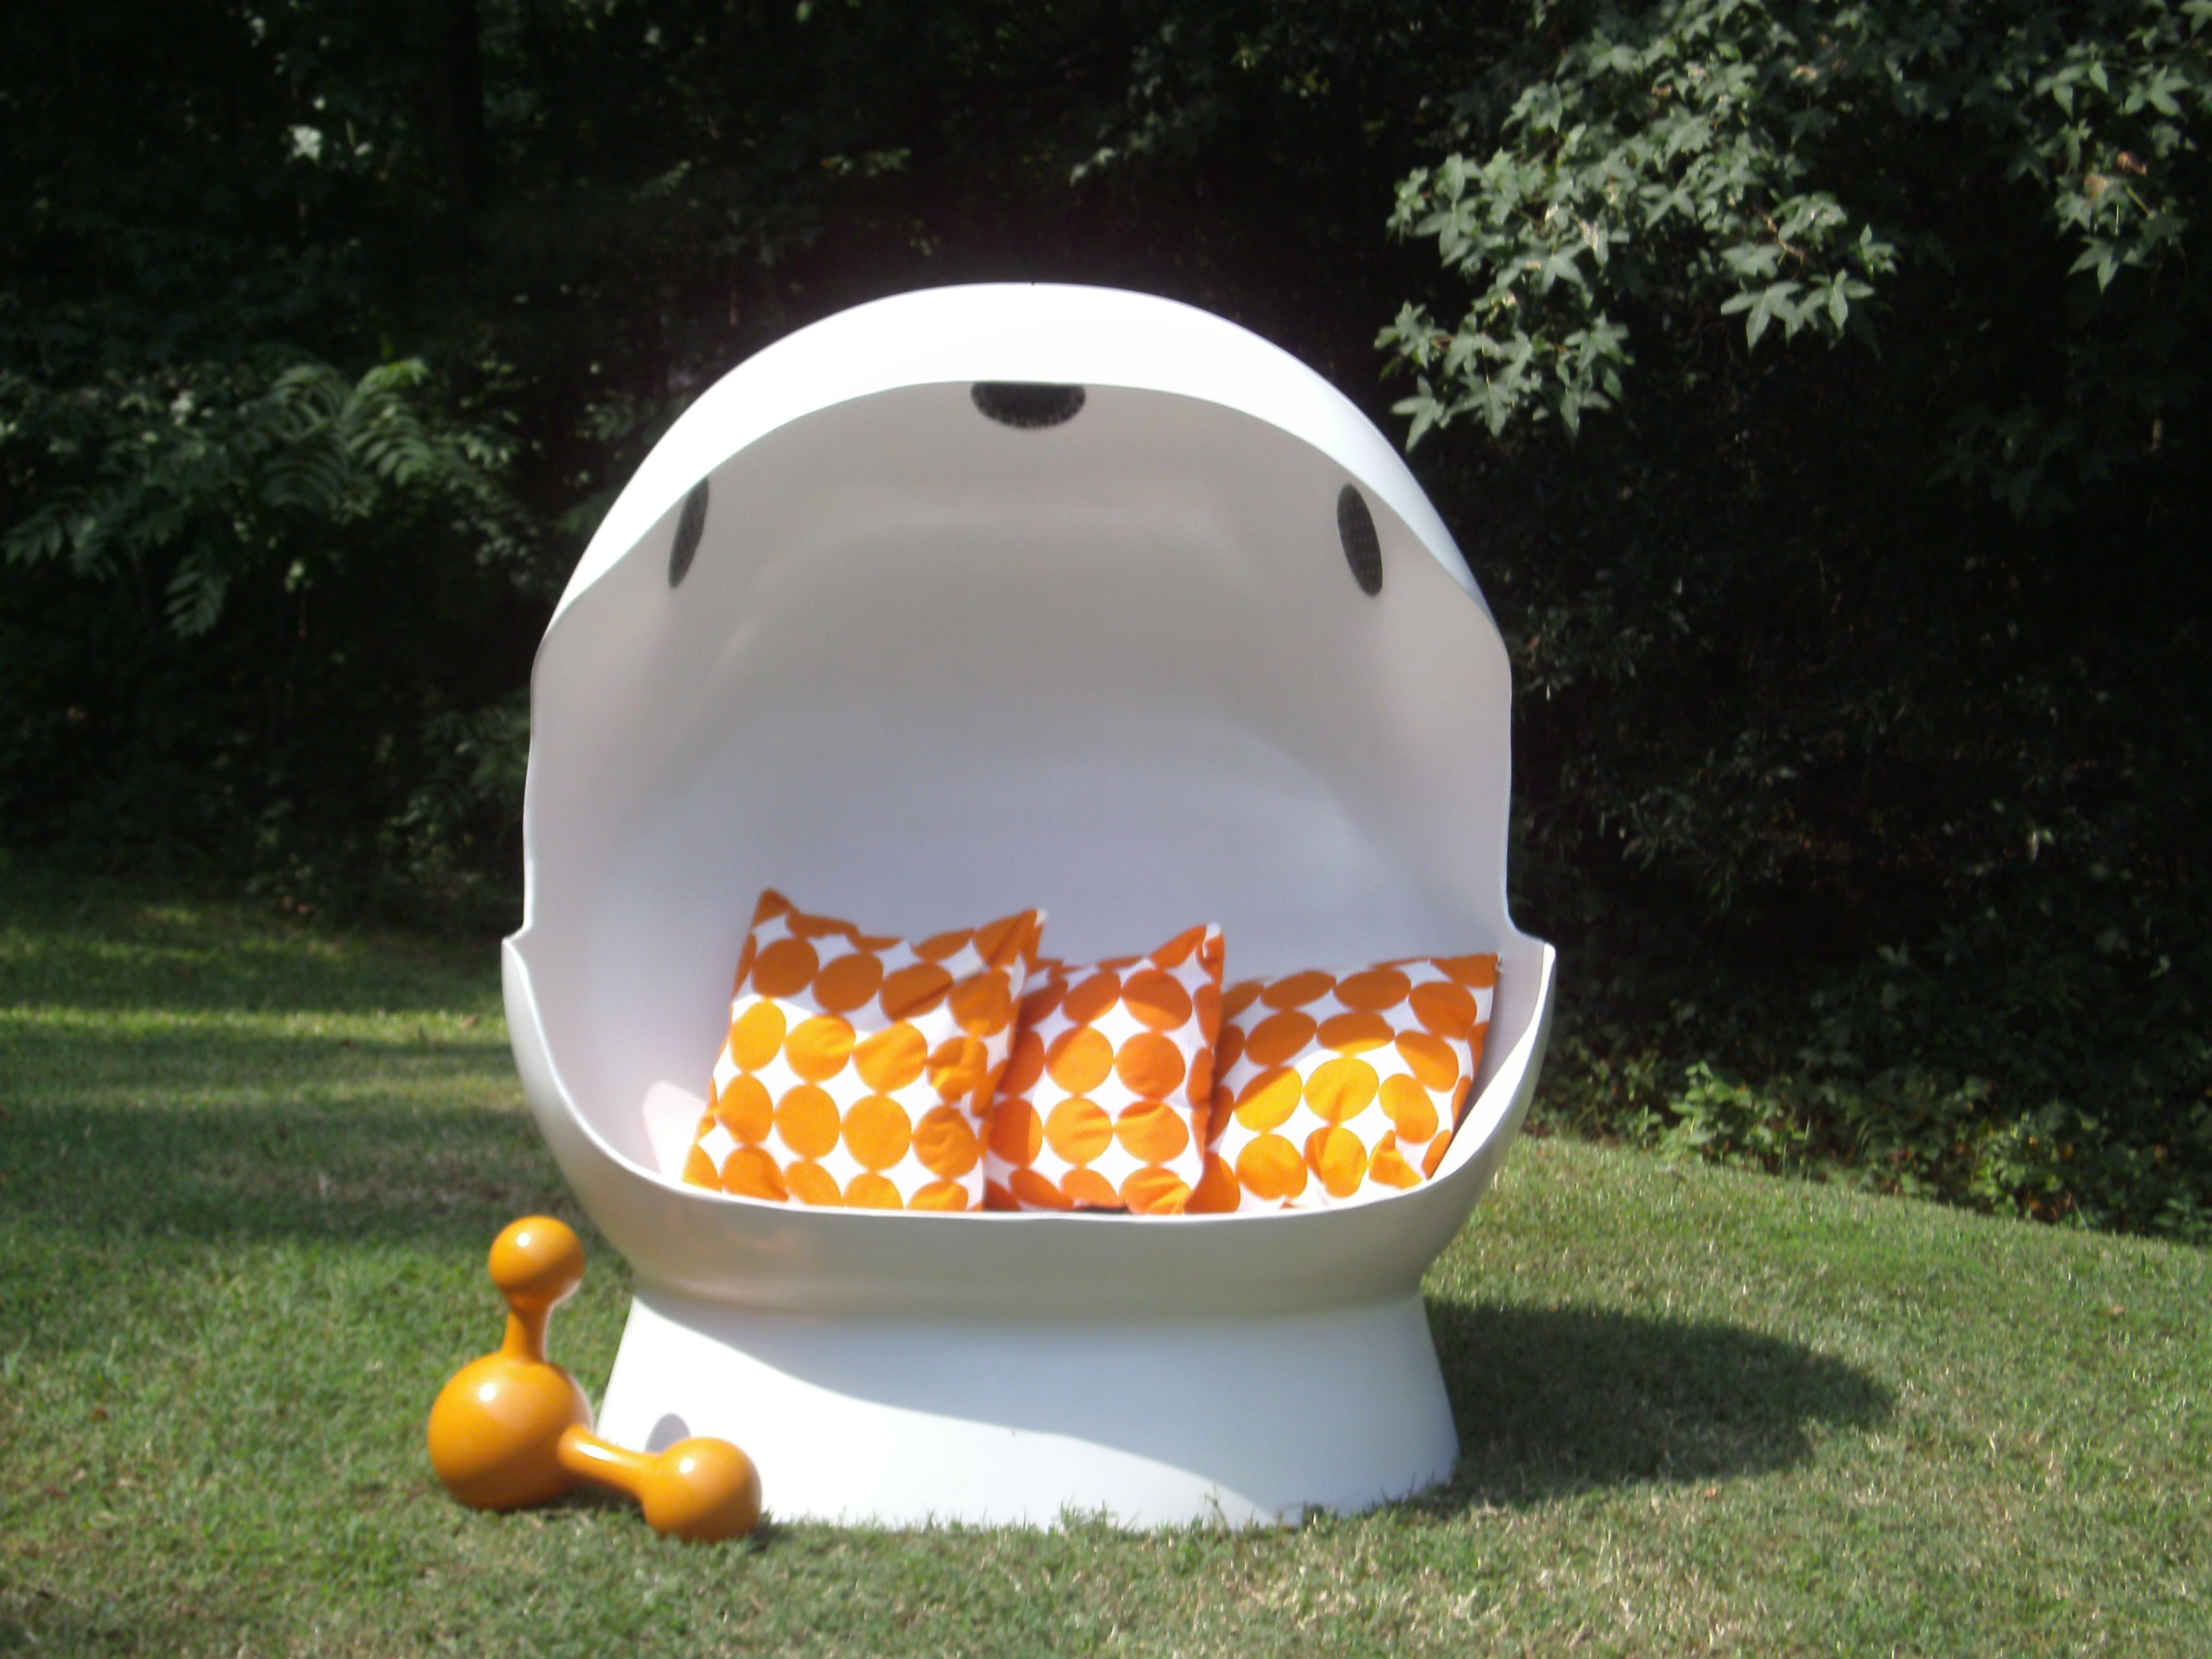 Mid Century Egg Chair W/ Built In Speakers. Seats 2 Adults, Or 3 Giggly  Girls With An I Pod!